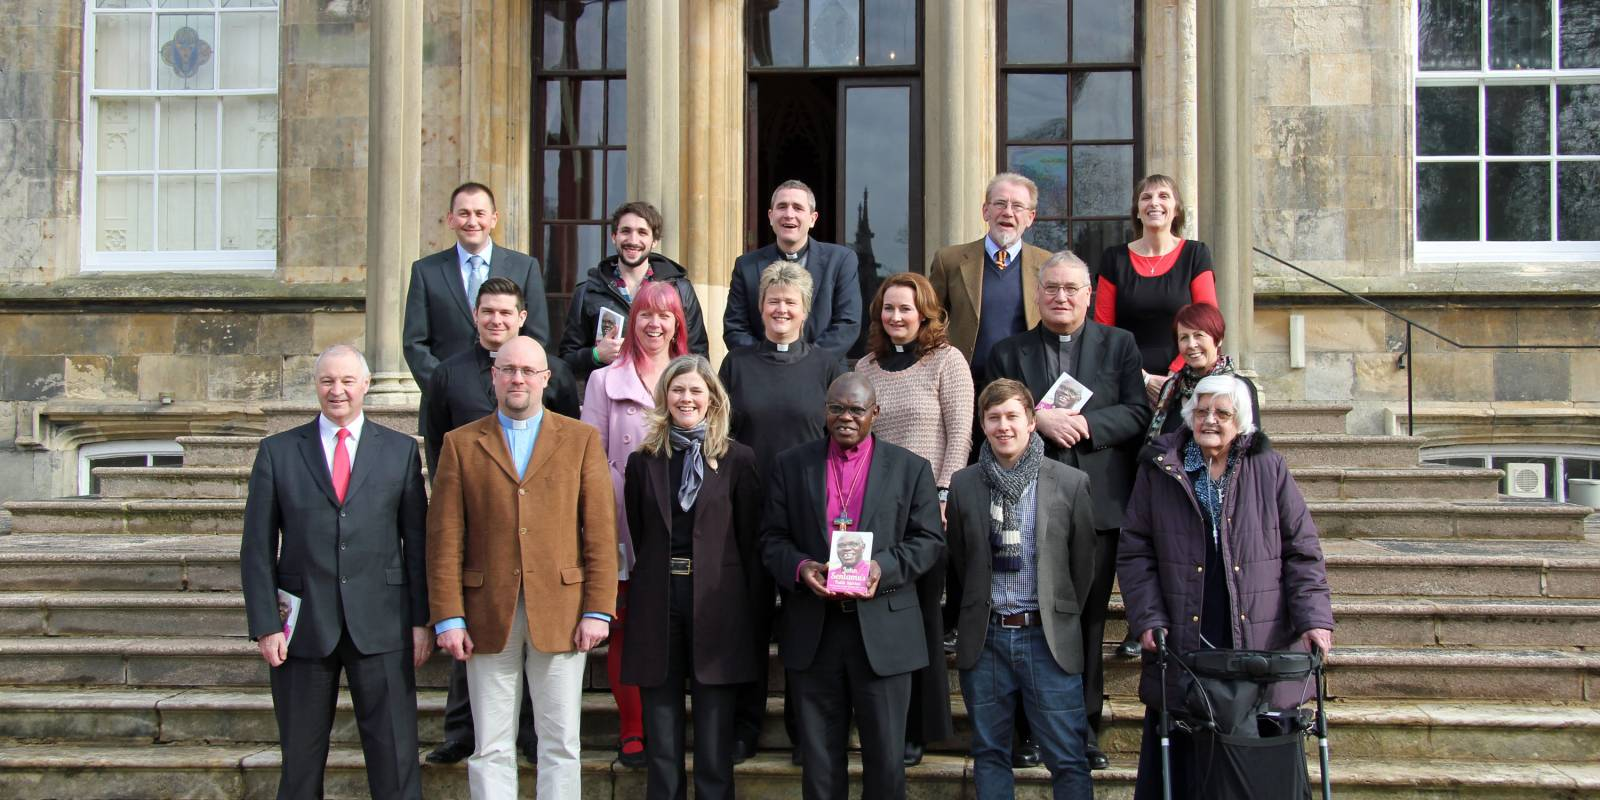 Contributors of Faith Stories Book on the steps at Bishopthorpe palace for the launch of the book